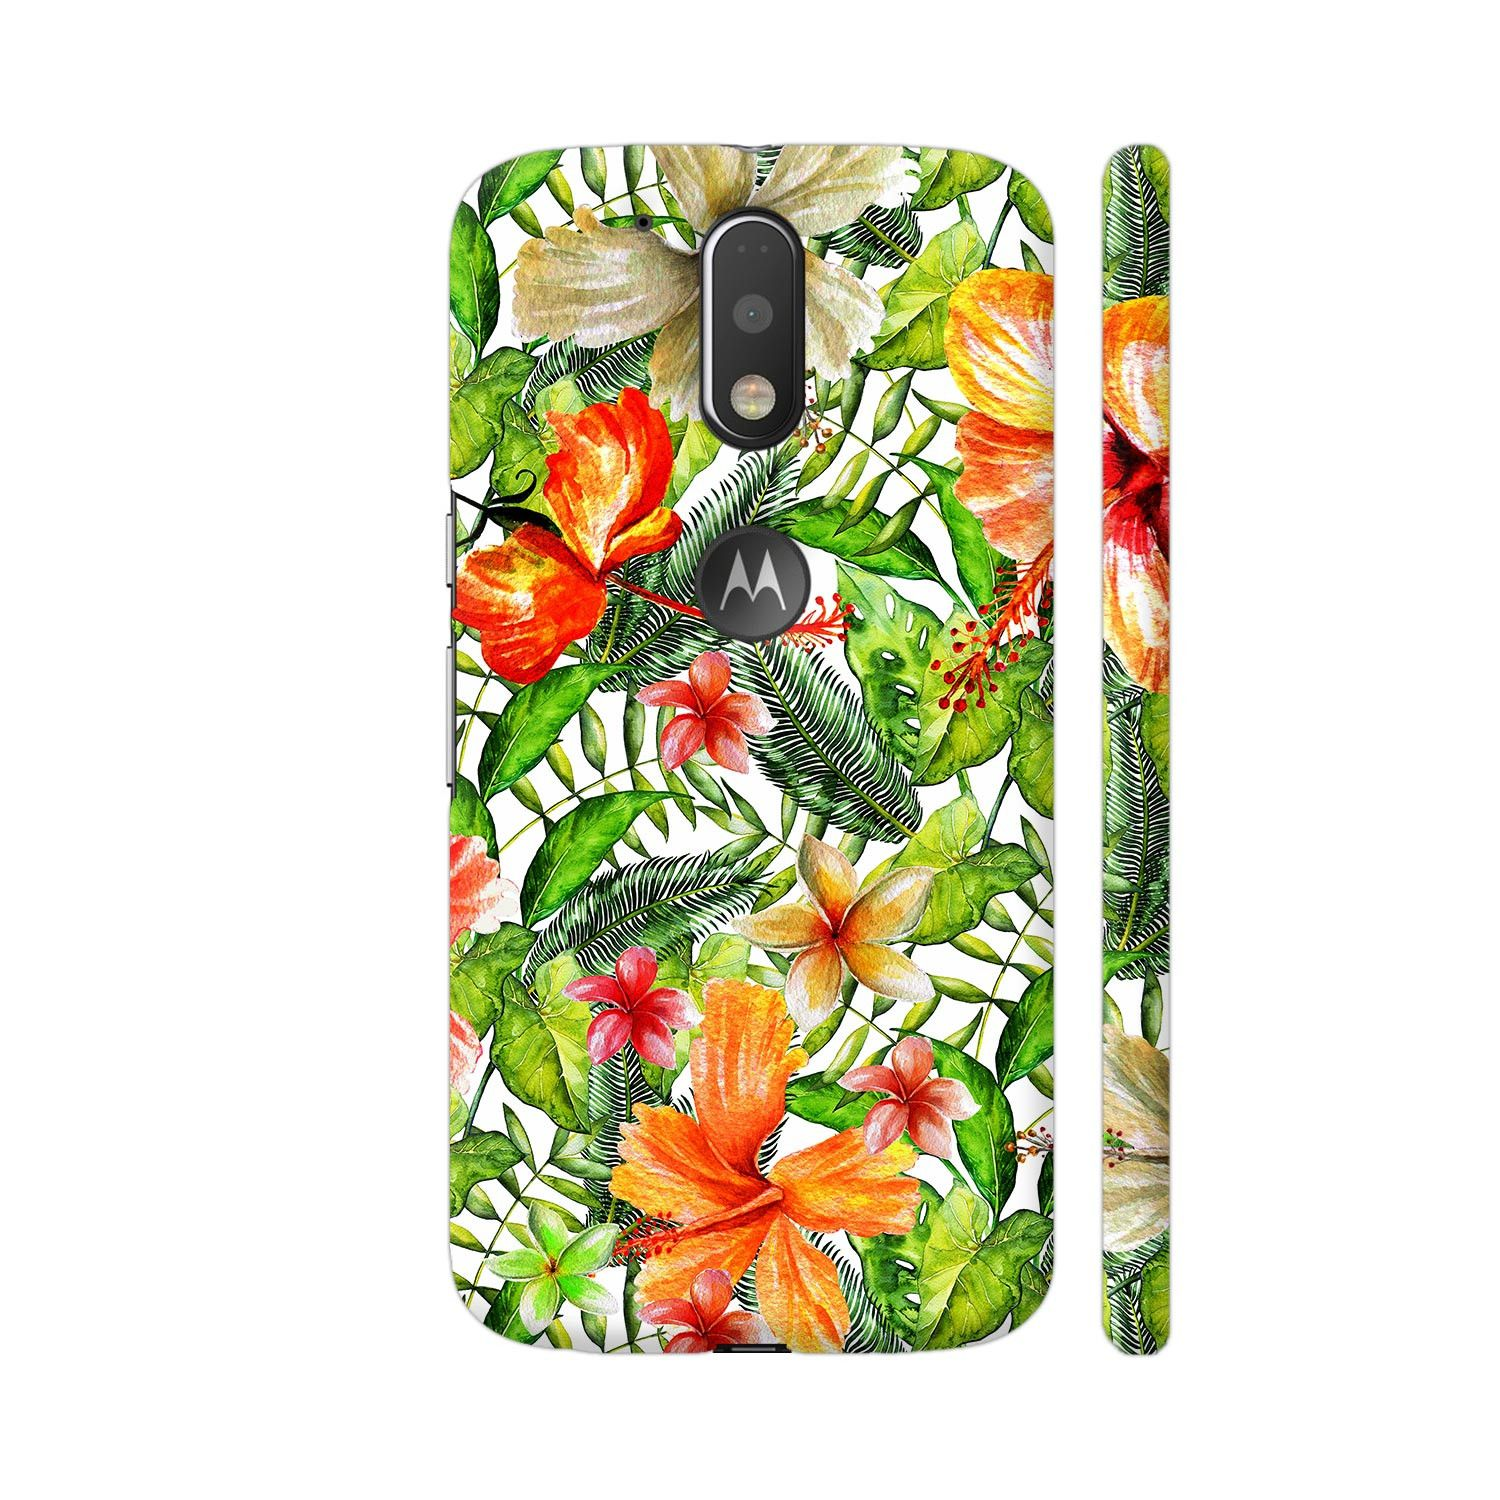 Tropical Hibiscus Flower Jungle Pattern Moto G4 / Moto G4 Plus Cover | Artist: UtART #junglepattern